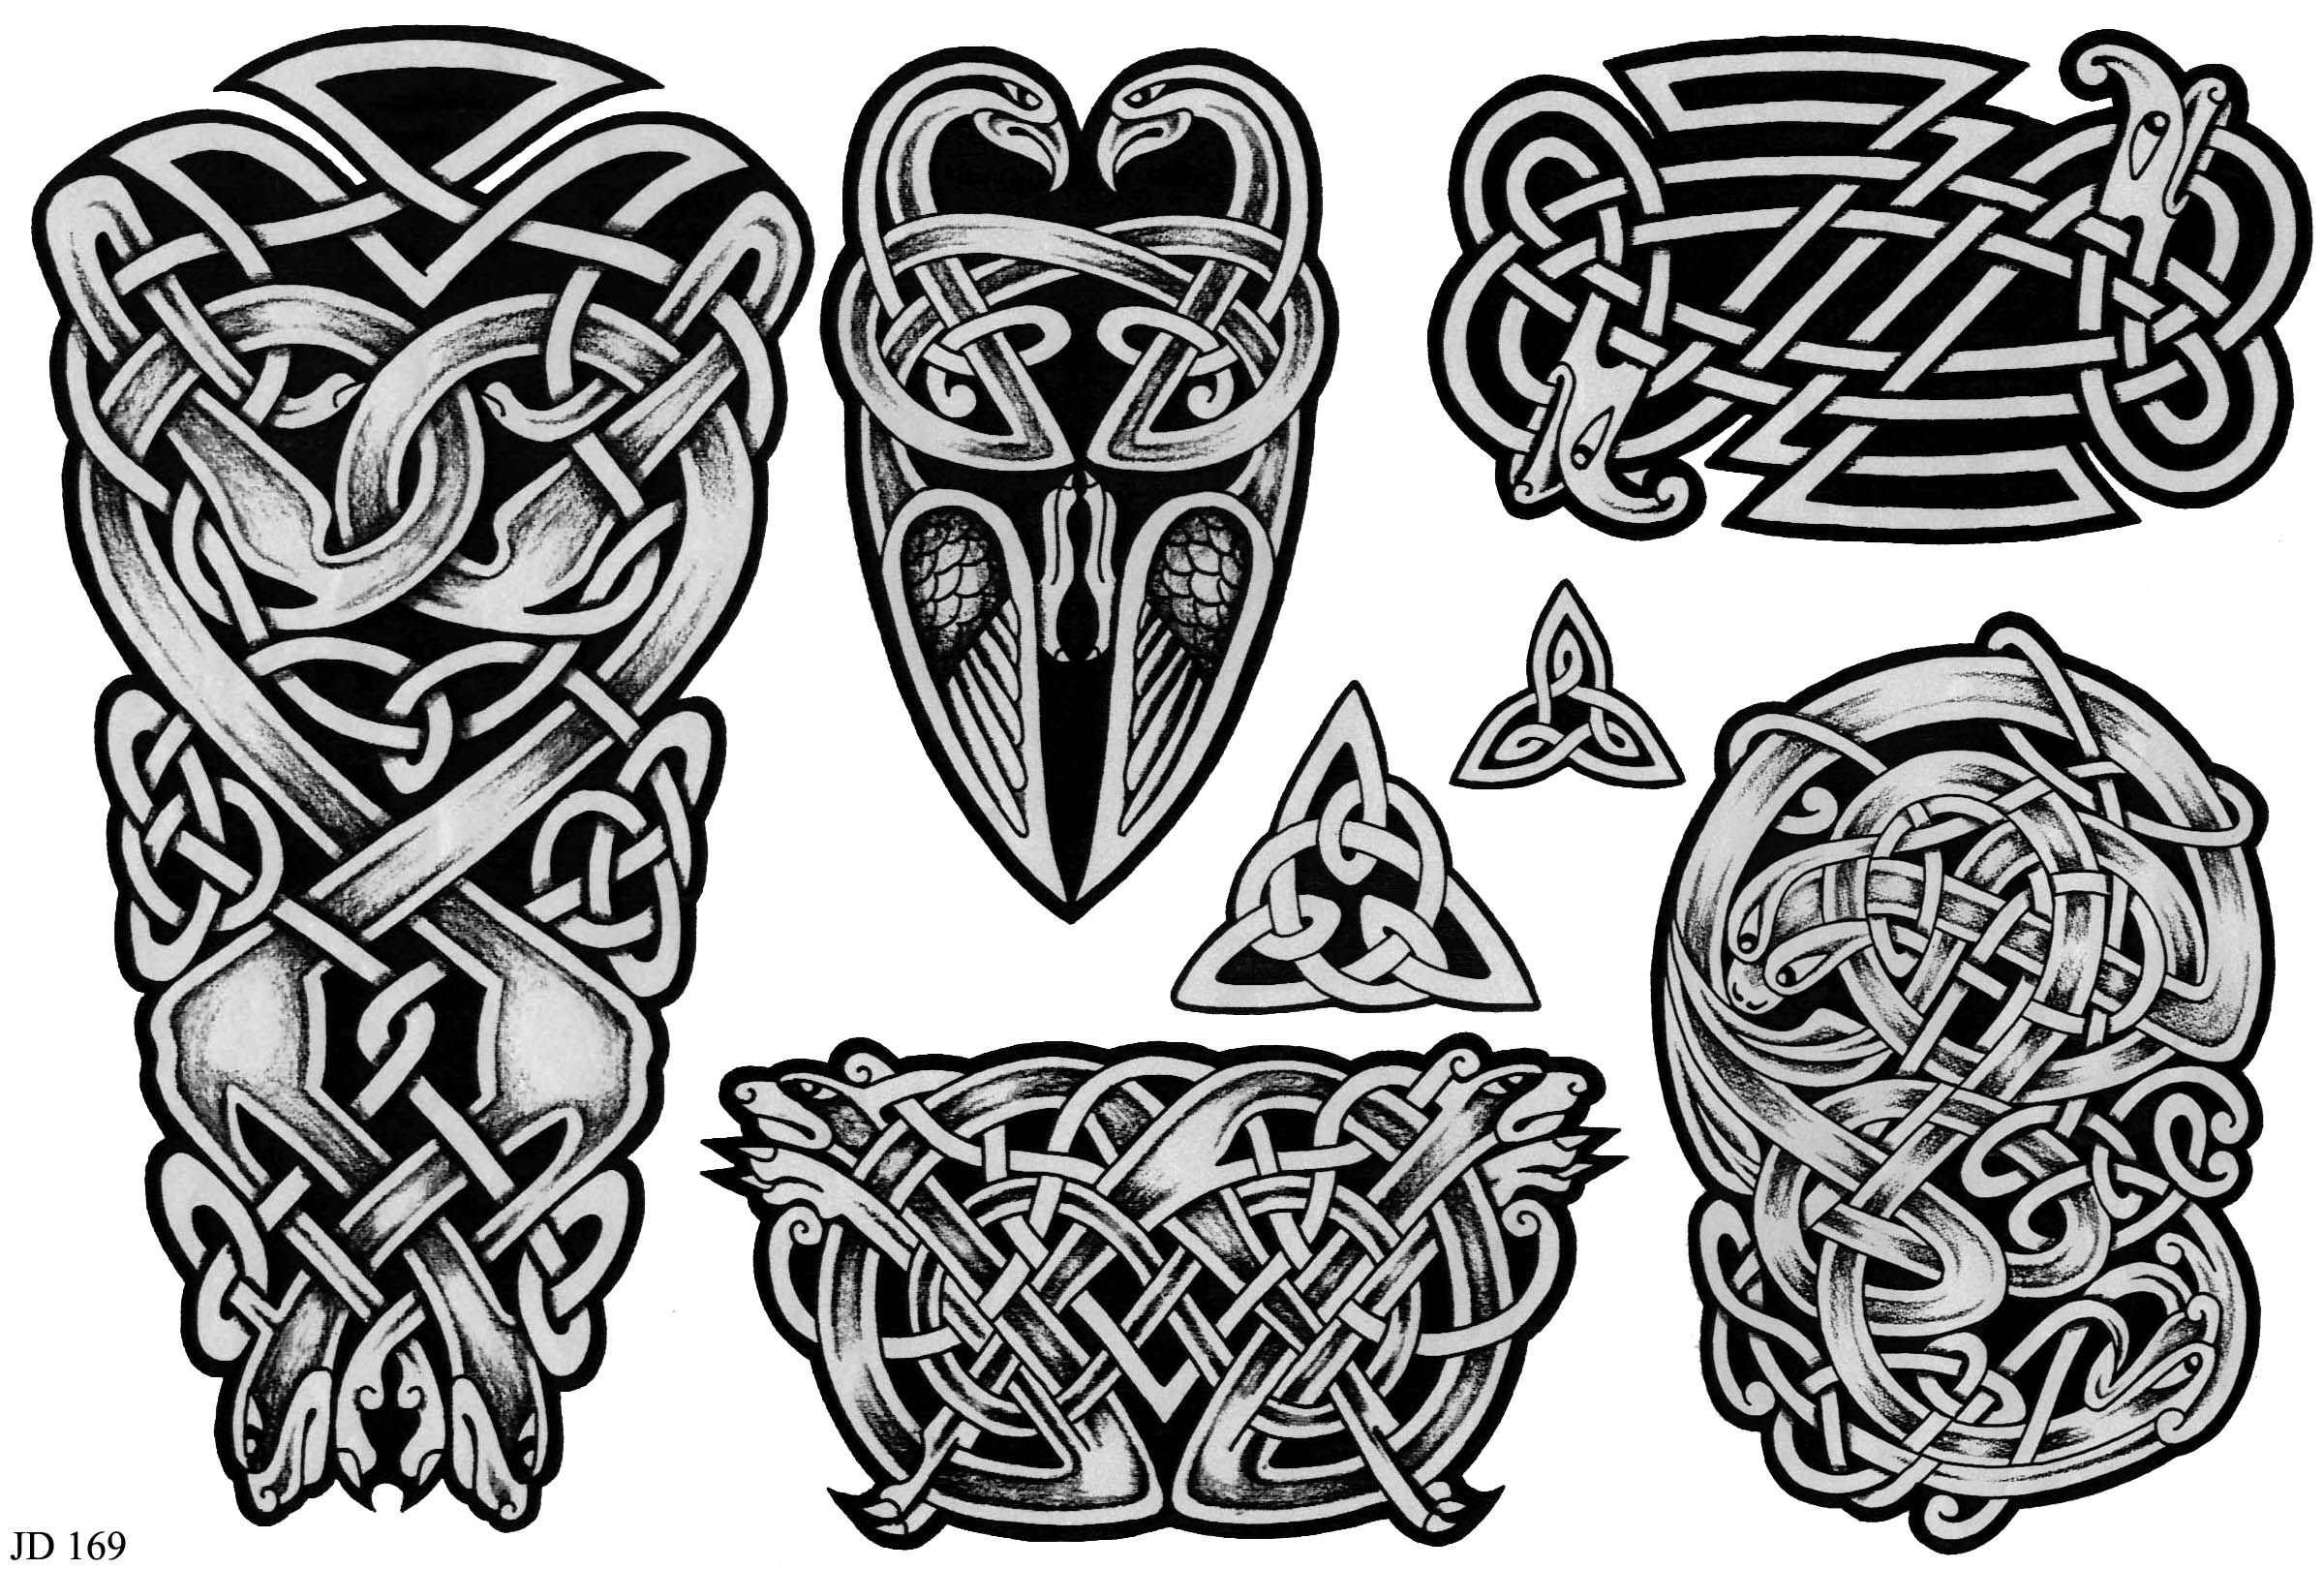 black celtic tattoo designs photo 2 tattoos pinterest celtic tattoos and tattoo designs. Black Bedroom Furniture Sets. Home Design Ideas